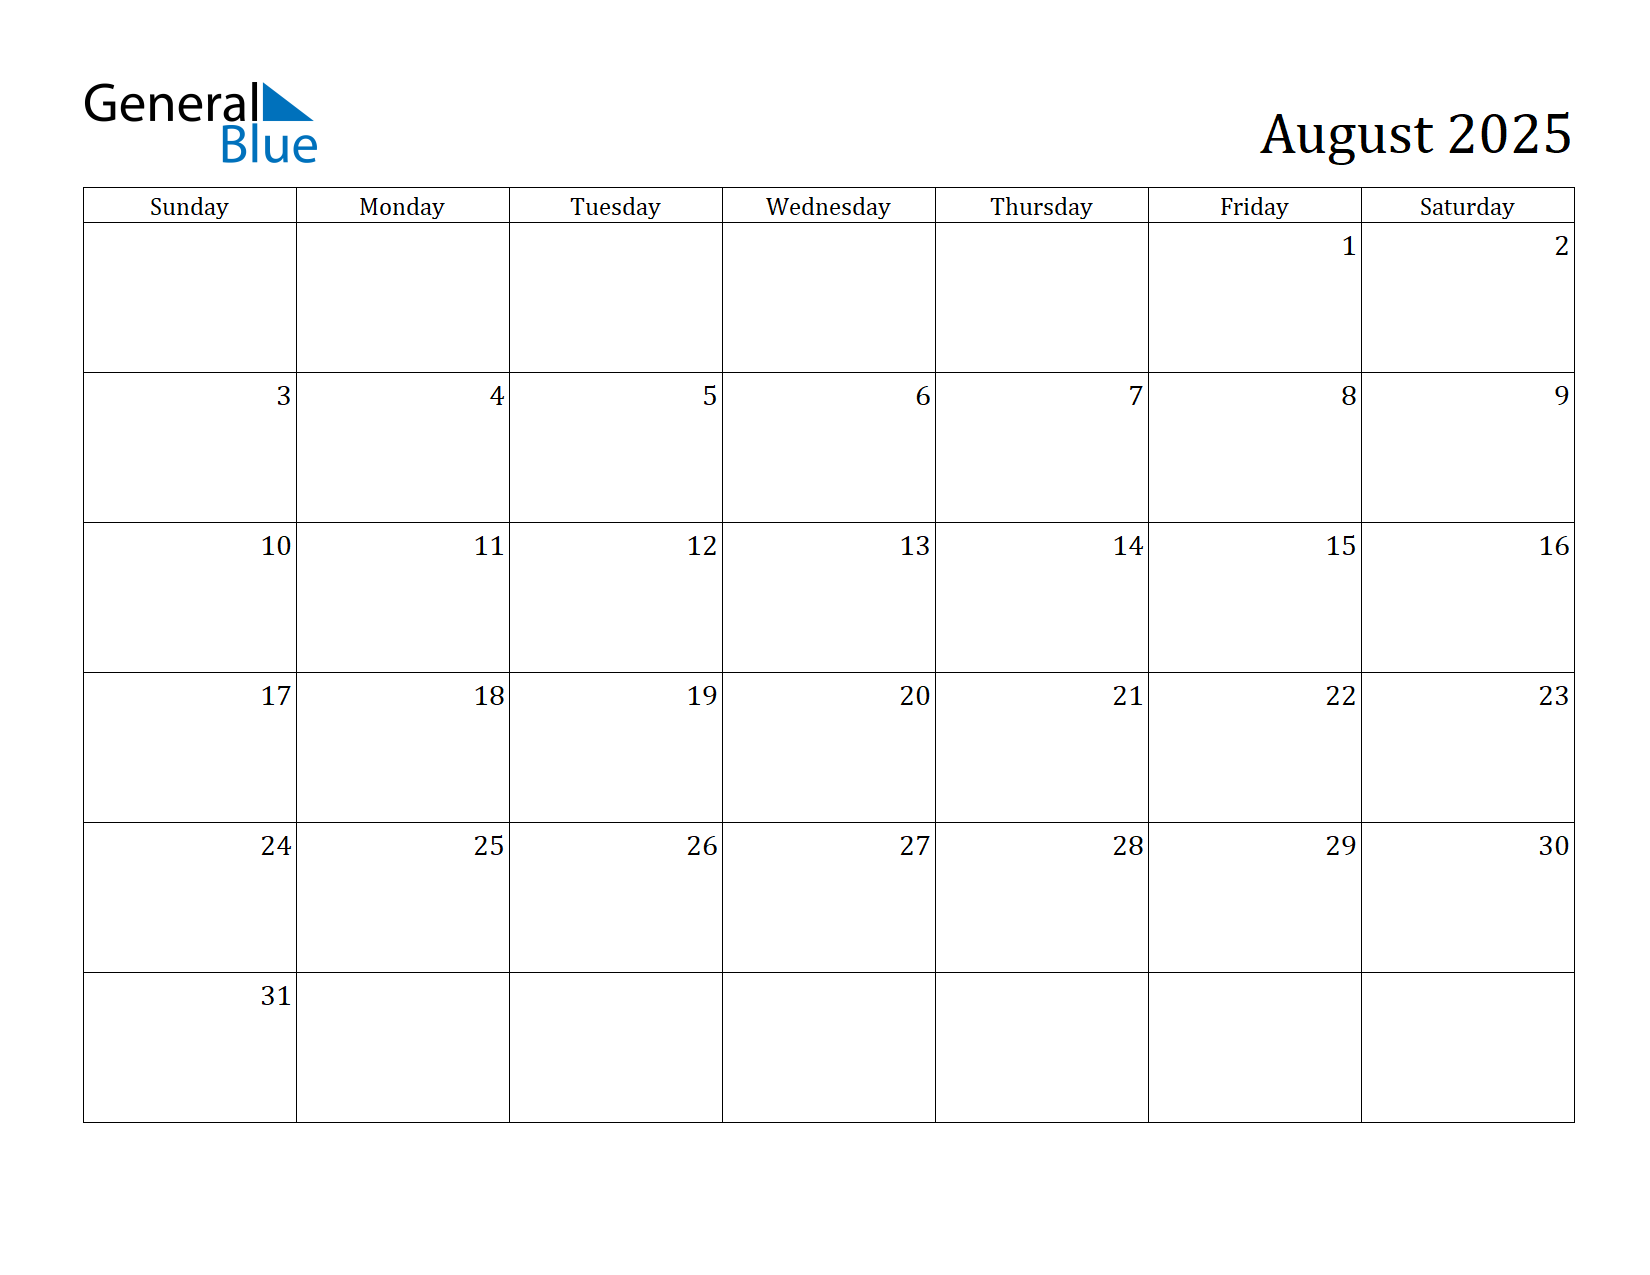 Image of August 2025 Calendar